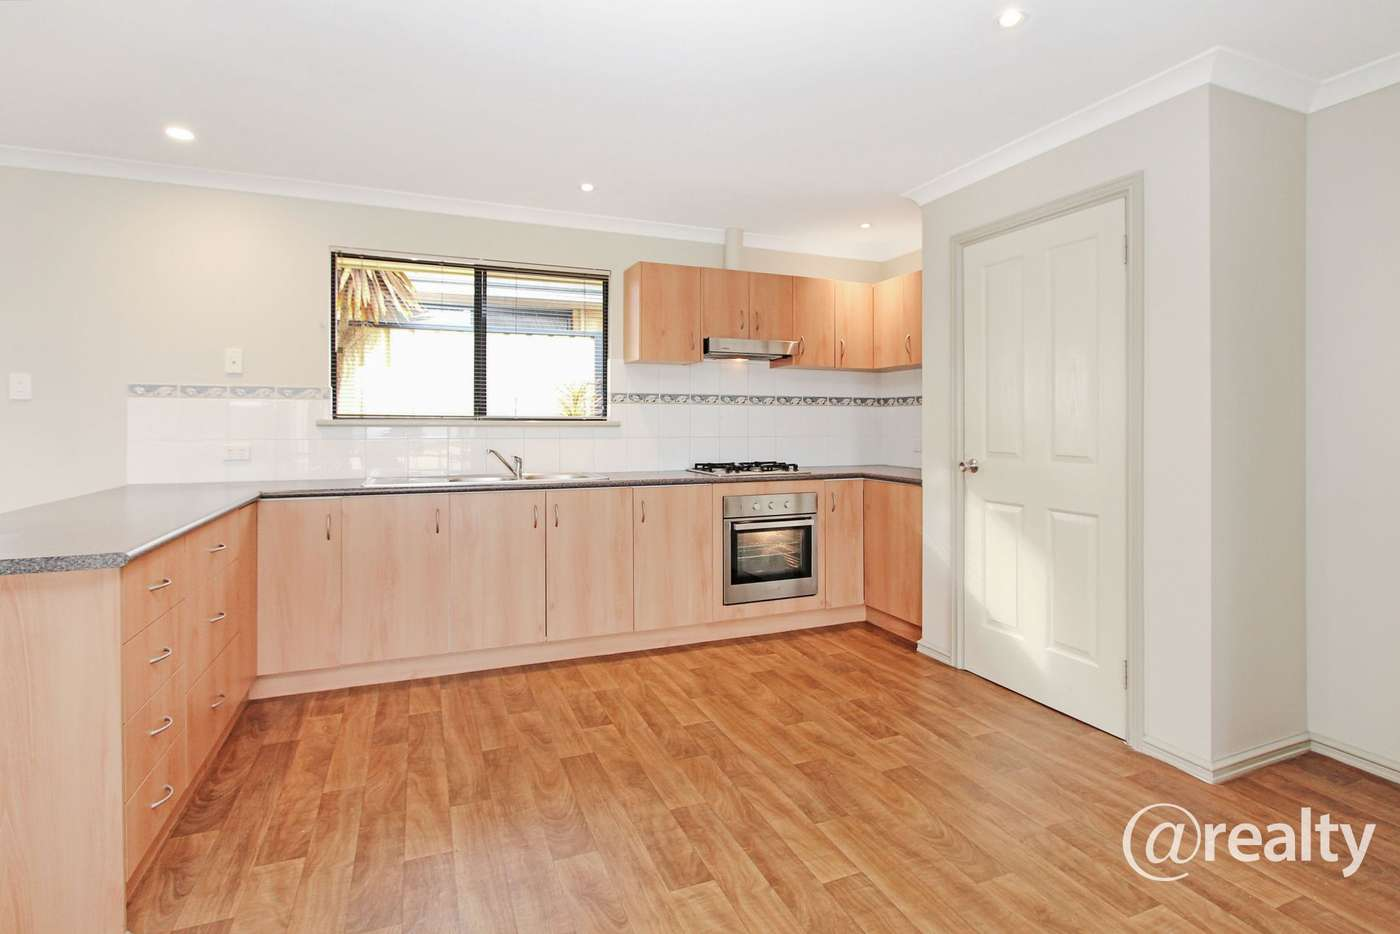 Seventh view of Homely house listing, 24 Preiss Street, Lockyer WA 6330